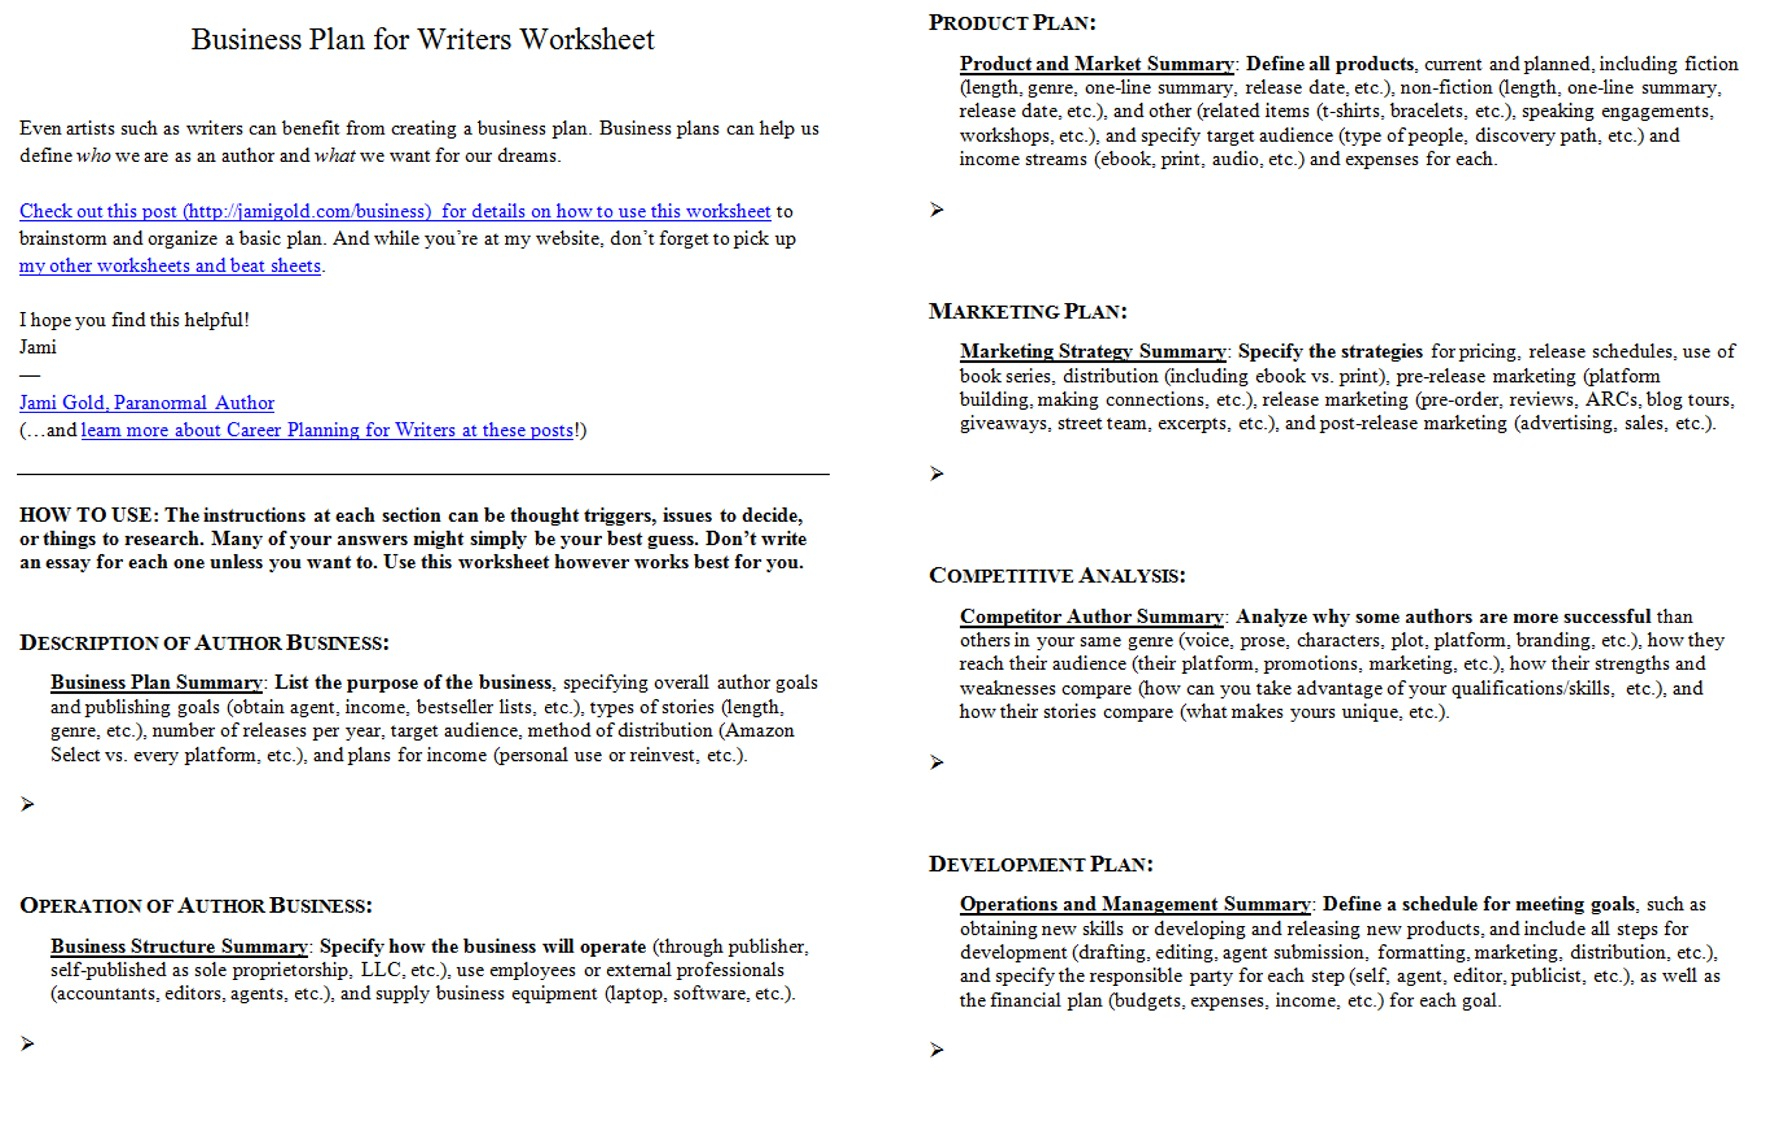 Weirdmailus  Sweet Worksheets For Writers  Jami Gold Paranormal Author With Fair Screen Shot Of Both Pages Of The Business Plan For Writers Worksheet With Lovely Sense Of Touch Worksheets Also Maths Worksheets Generator In Addition Math For Grade  Worksheets And Math Middle School Worksheets As Well As Simple Sentences For Kids Worksheets Additionally Monomial Multiplication Worksheet From Jamigoldcom With Weirdmailus  Fair Worksheets For Writers  Jami Gold Paranormal Author With Lovely Screen Shot Of Both Pages Of The Business Plan For Writers Worksheet And Sweet Sense Of Touch Worksheets Also Maths Worksheets Generator In Addition Math For Grade  Worksheets From Jamigoldcom